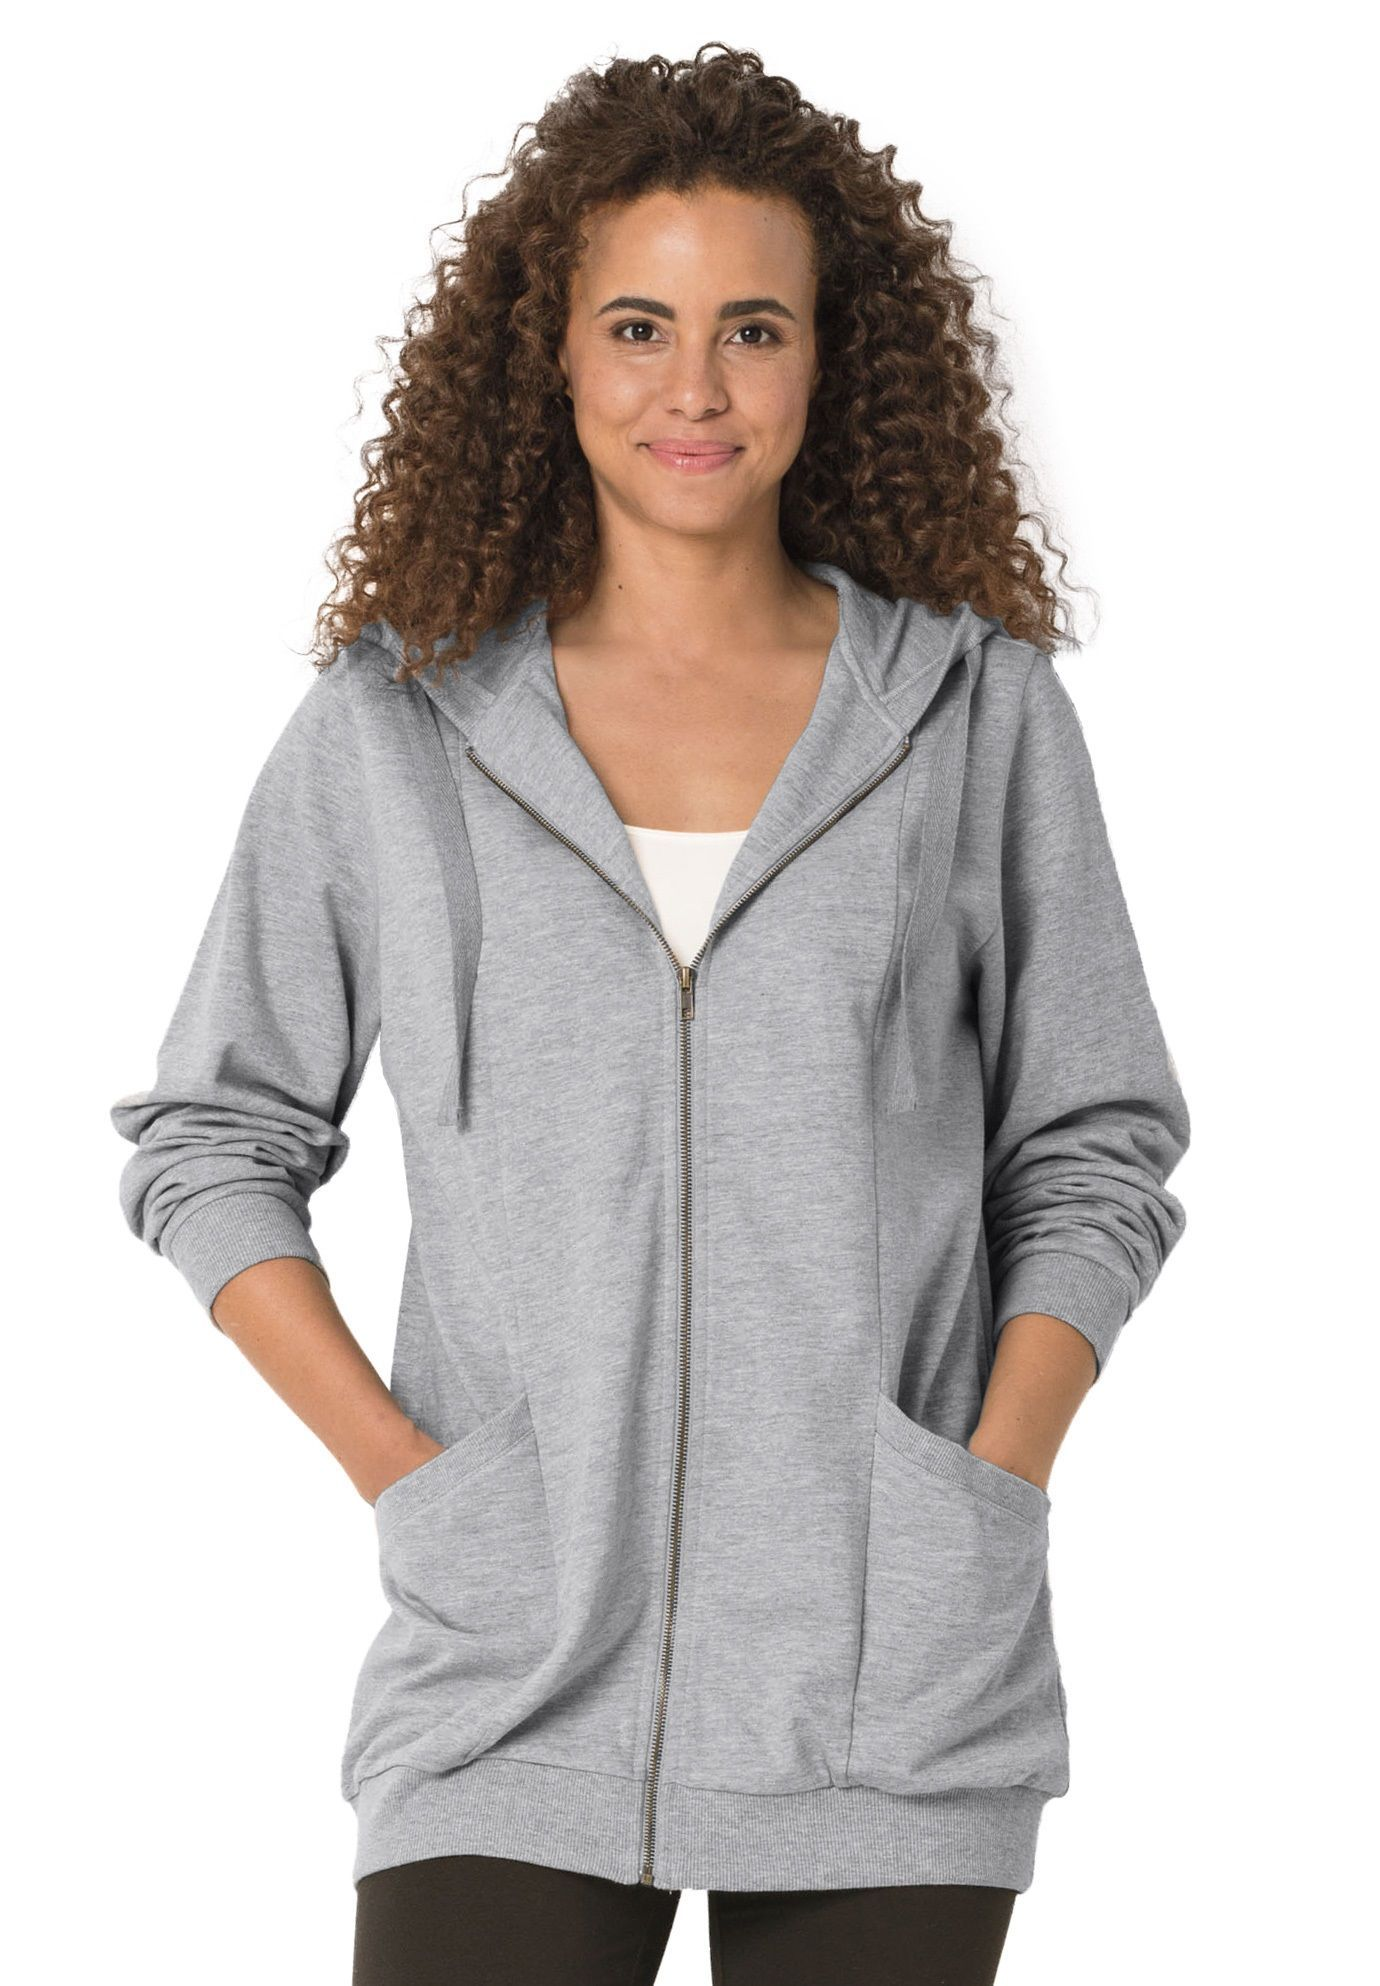 dc3af80f08e Zip front tunic hoodie - Women's Plus Size Clothing | Products in ...